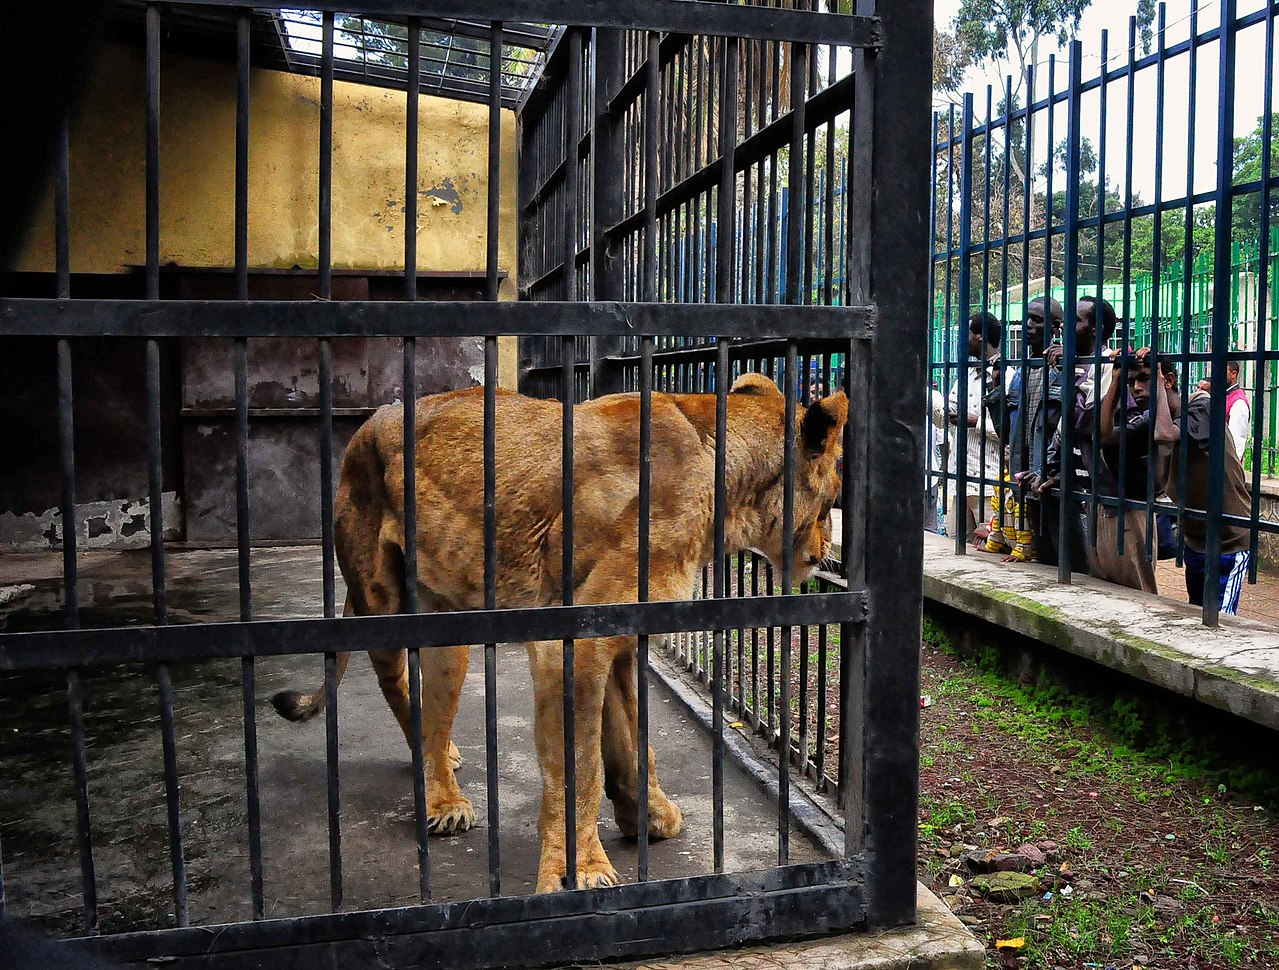 a lioness in a cage by Rod Waddington Wikimedia Commons